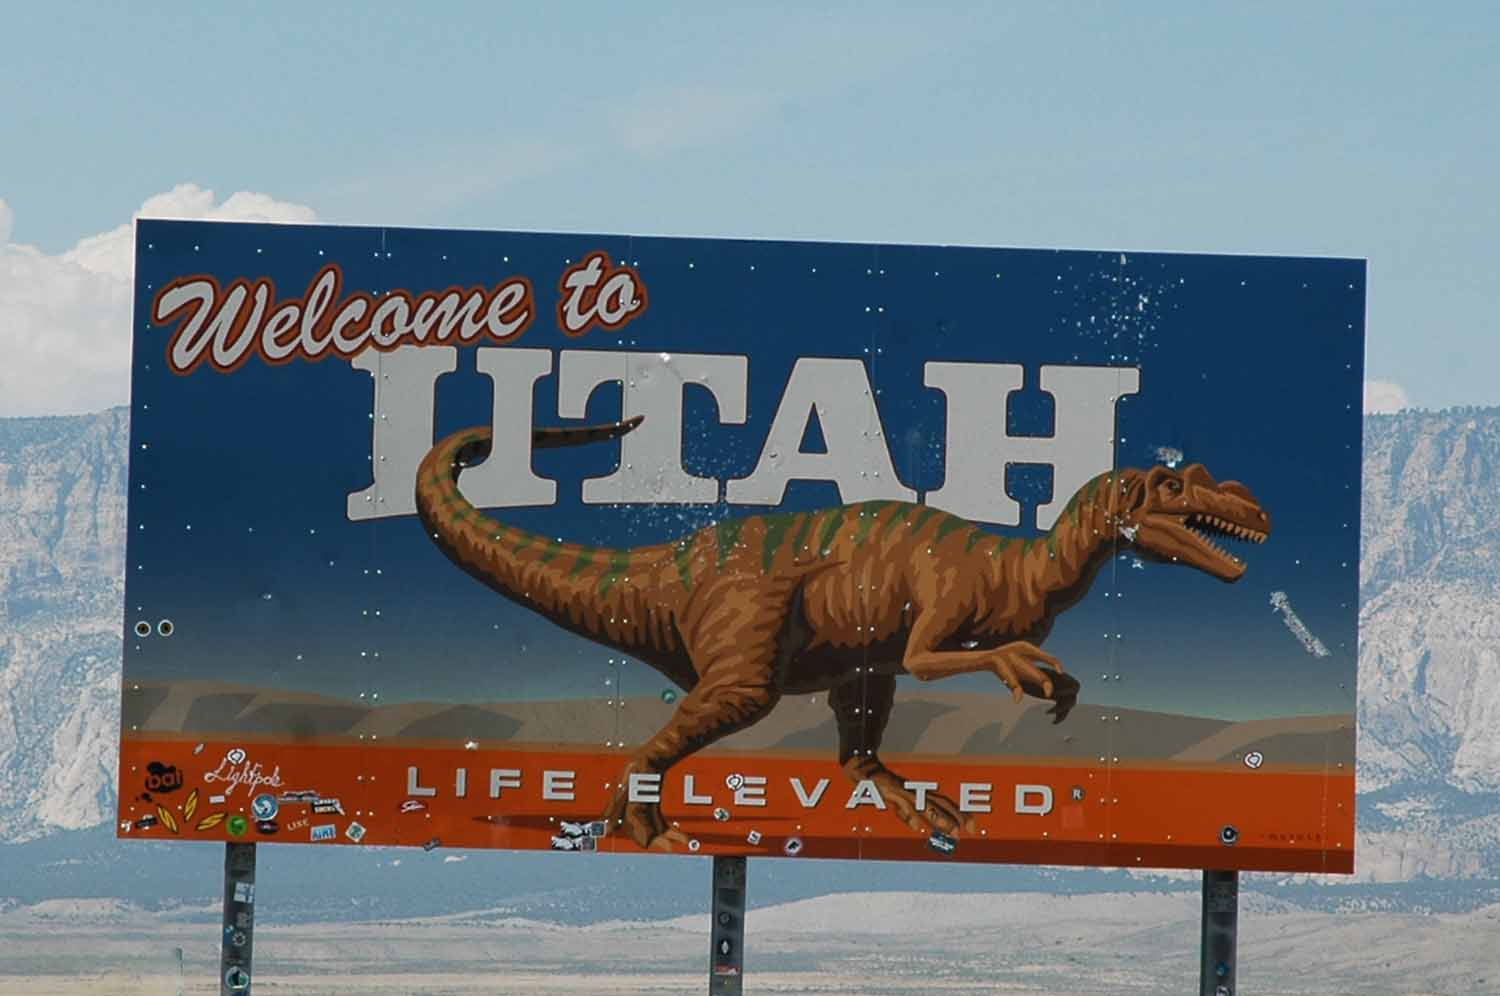 Greeted in Utah with a weather worn sign...